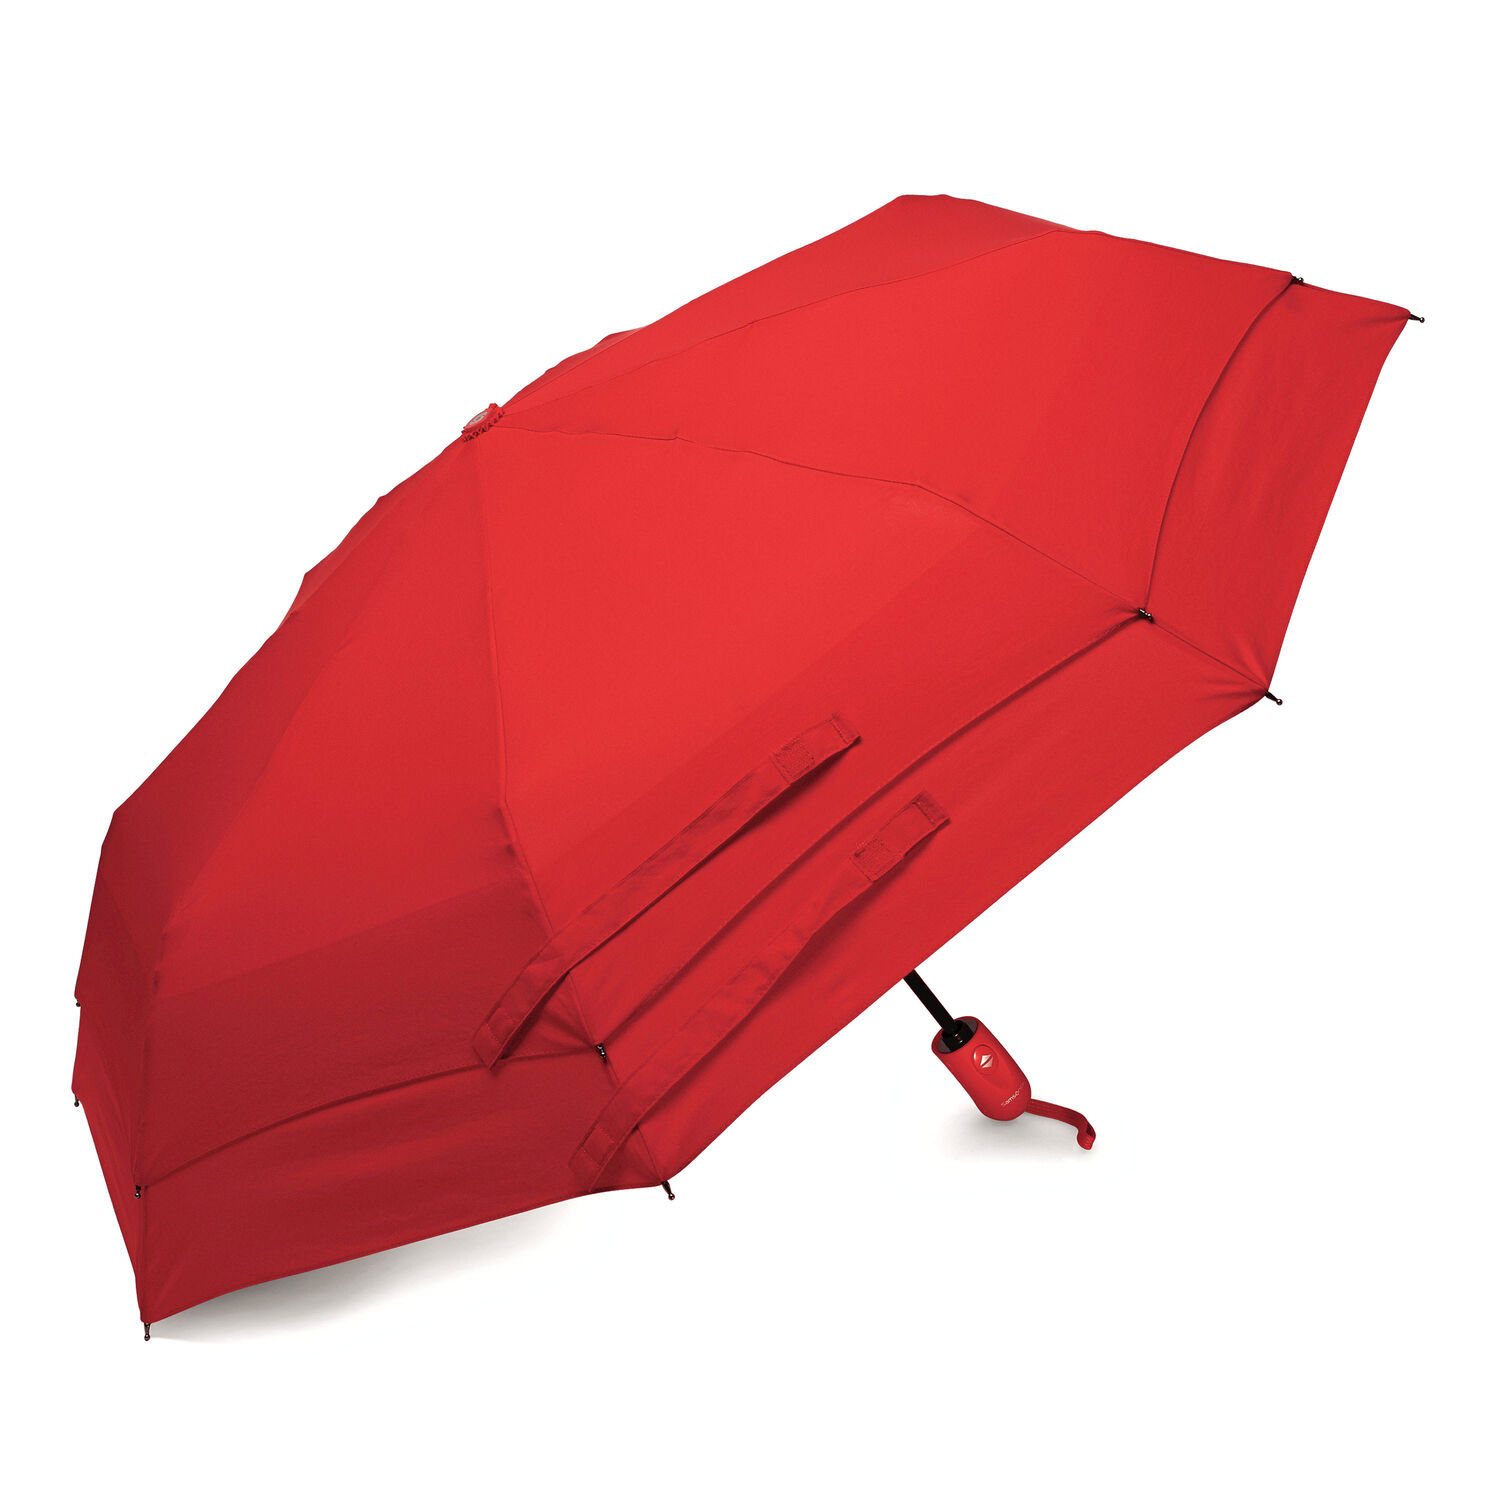 Samsonite Windguard Auto Open Close Umbrella